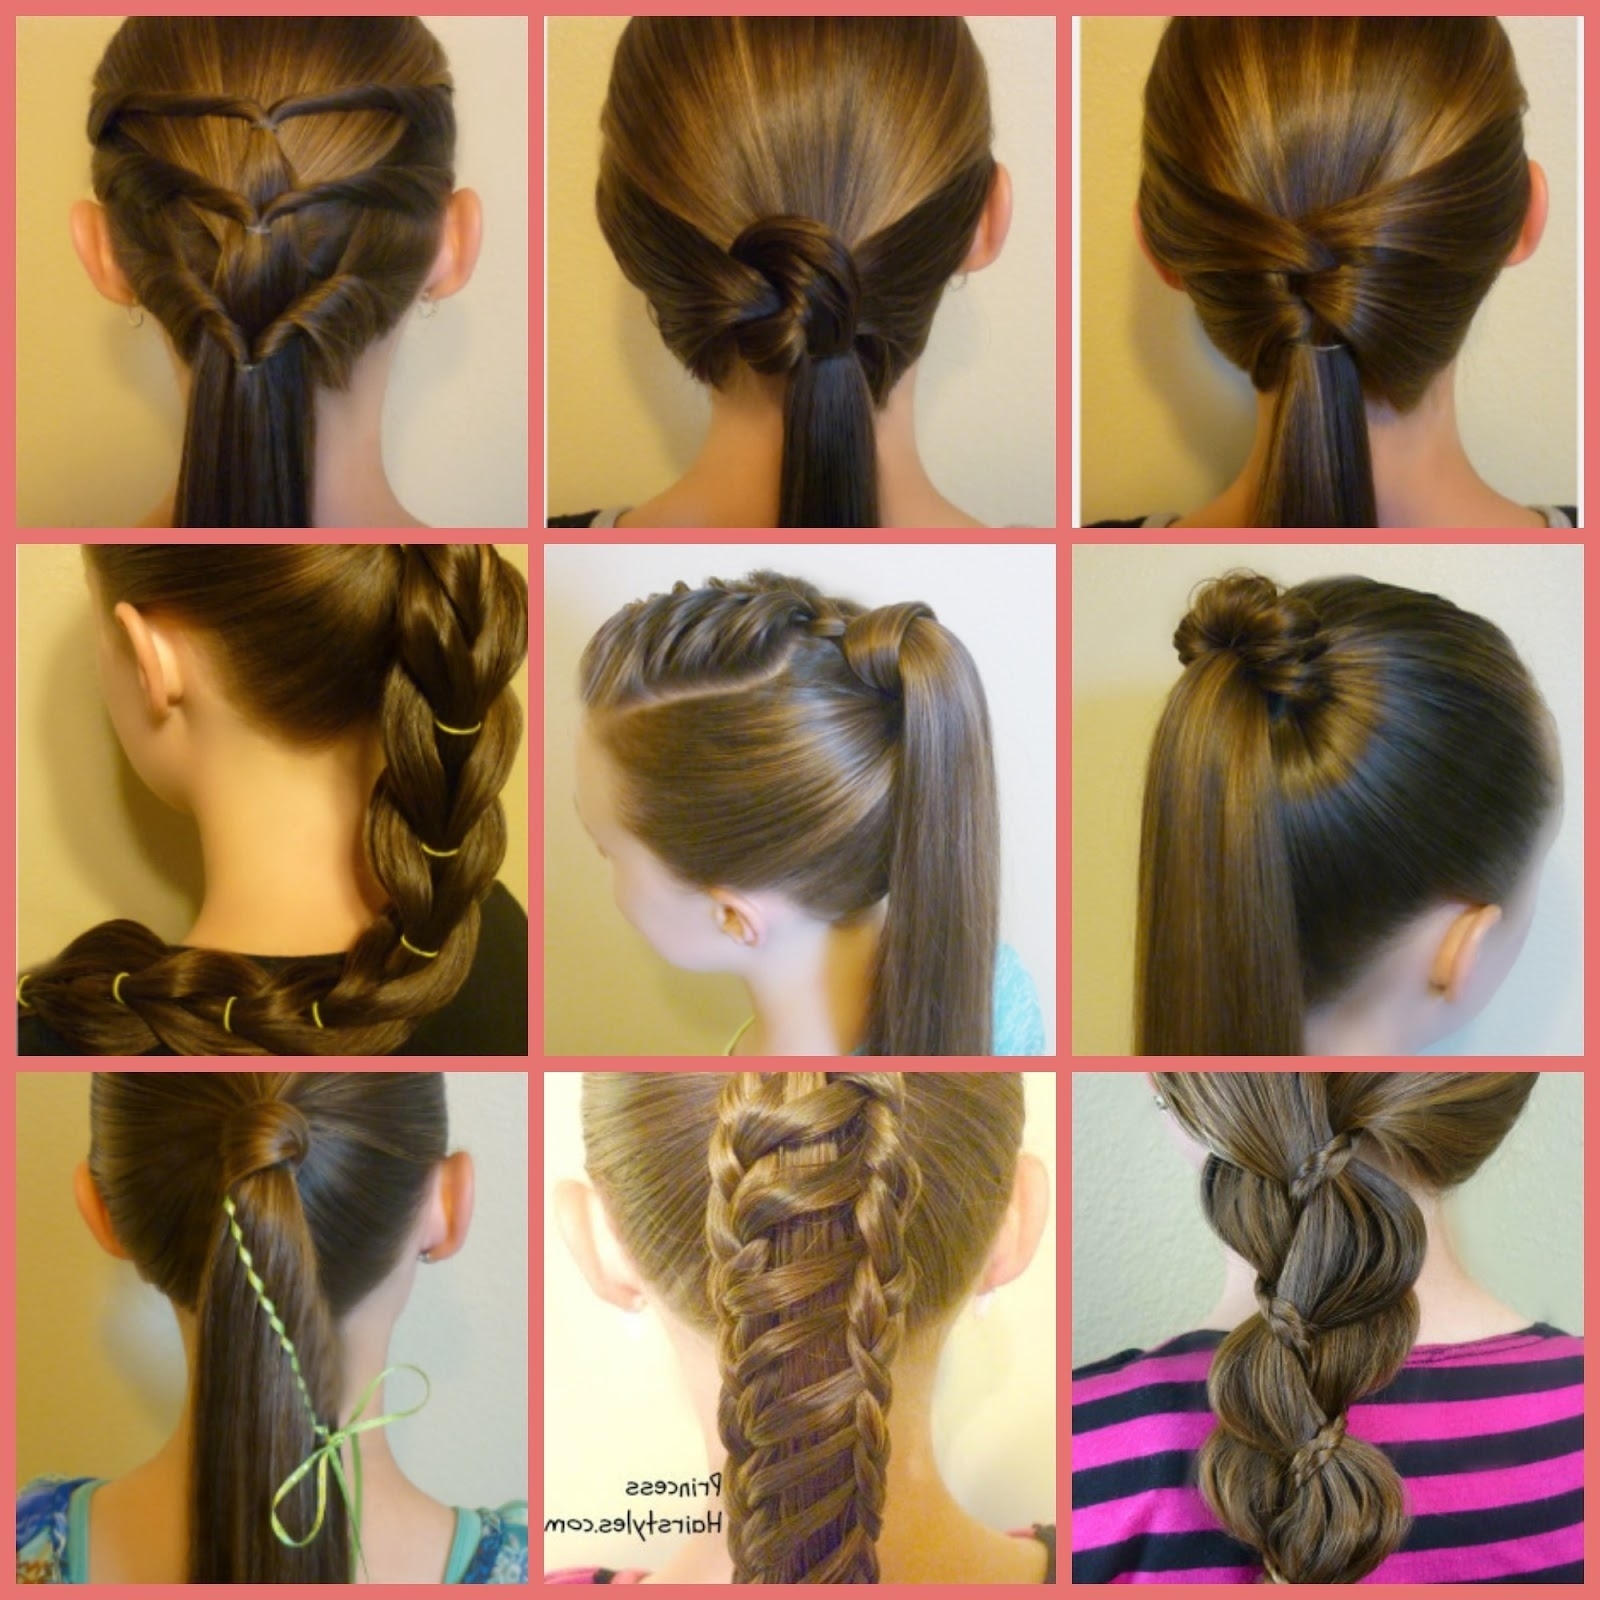 Fashionable French Braid Ponytail Hairstyles With Bubbles Throughout 10 Easy Ponytail Hairstyles – Hairstyles For Girls – Princess Hairstyles (View 5 of 20)